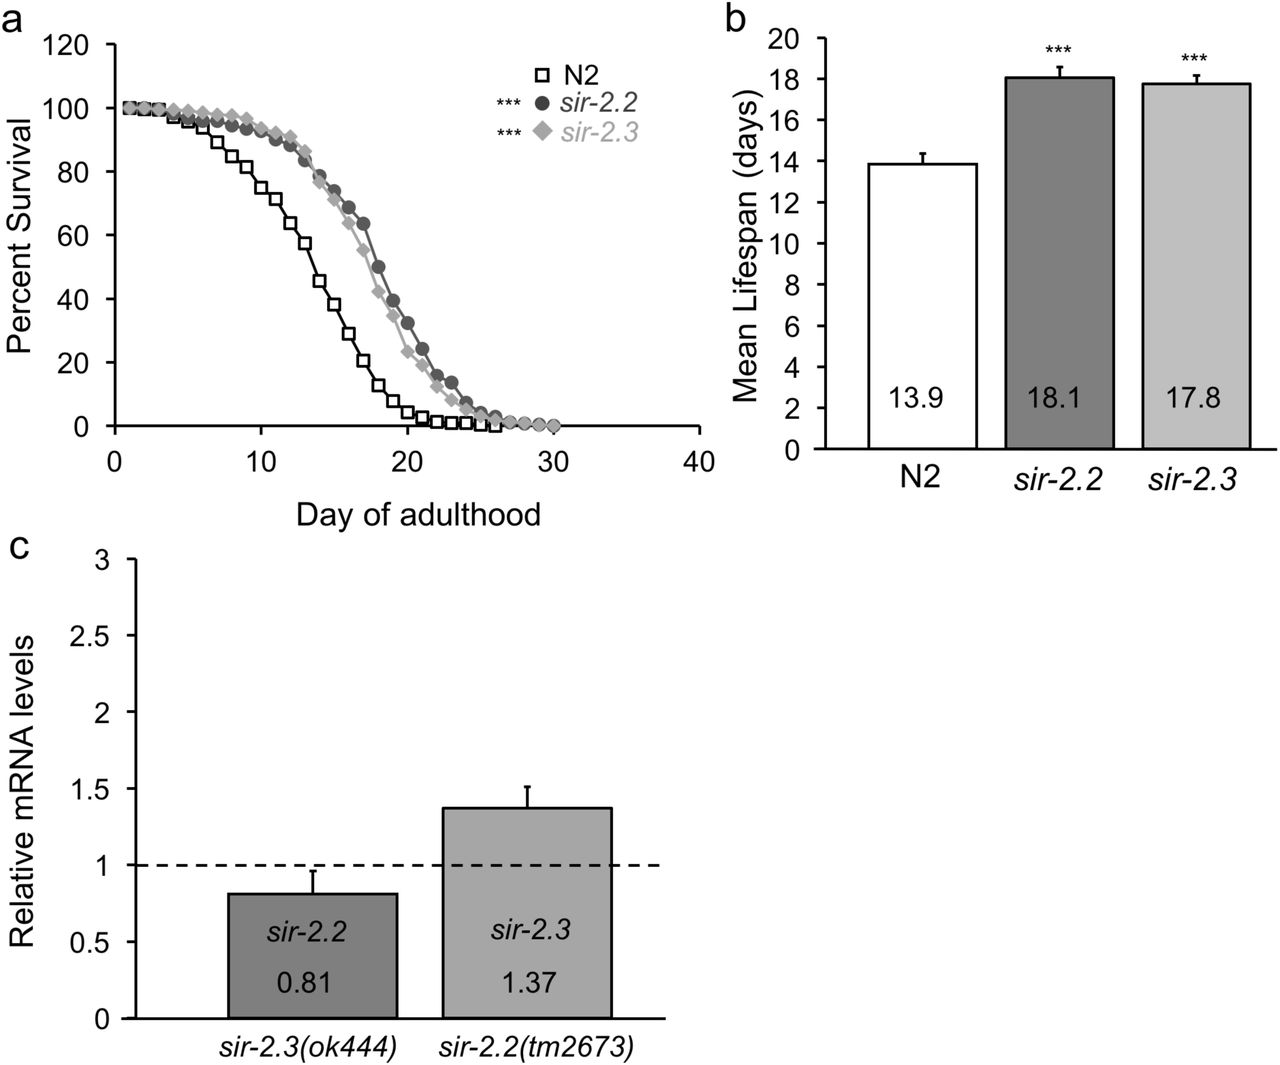 Mitochondrial sirtuins sir-2 2 and sir-2 3 regulate lifespan in C